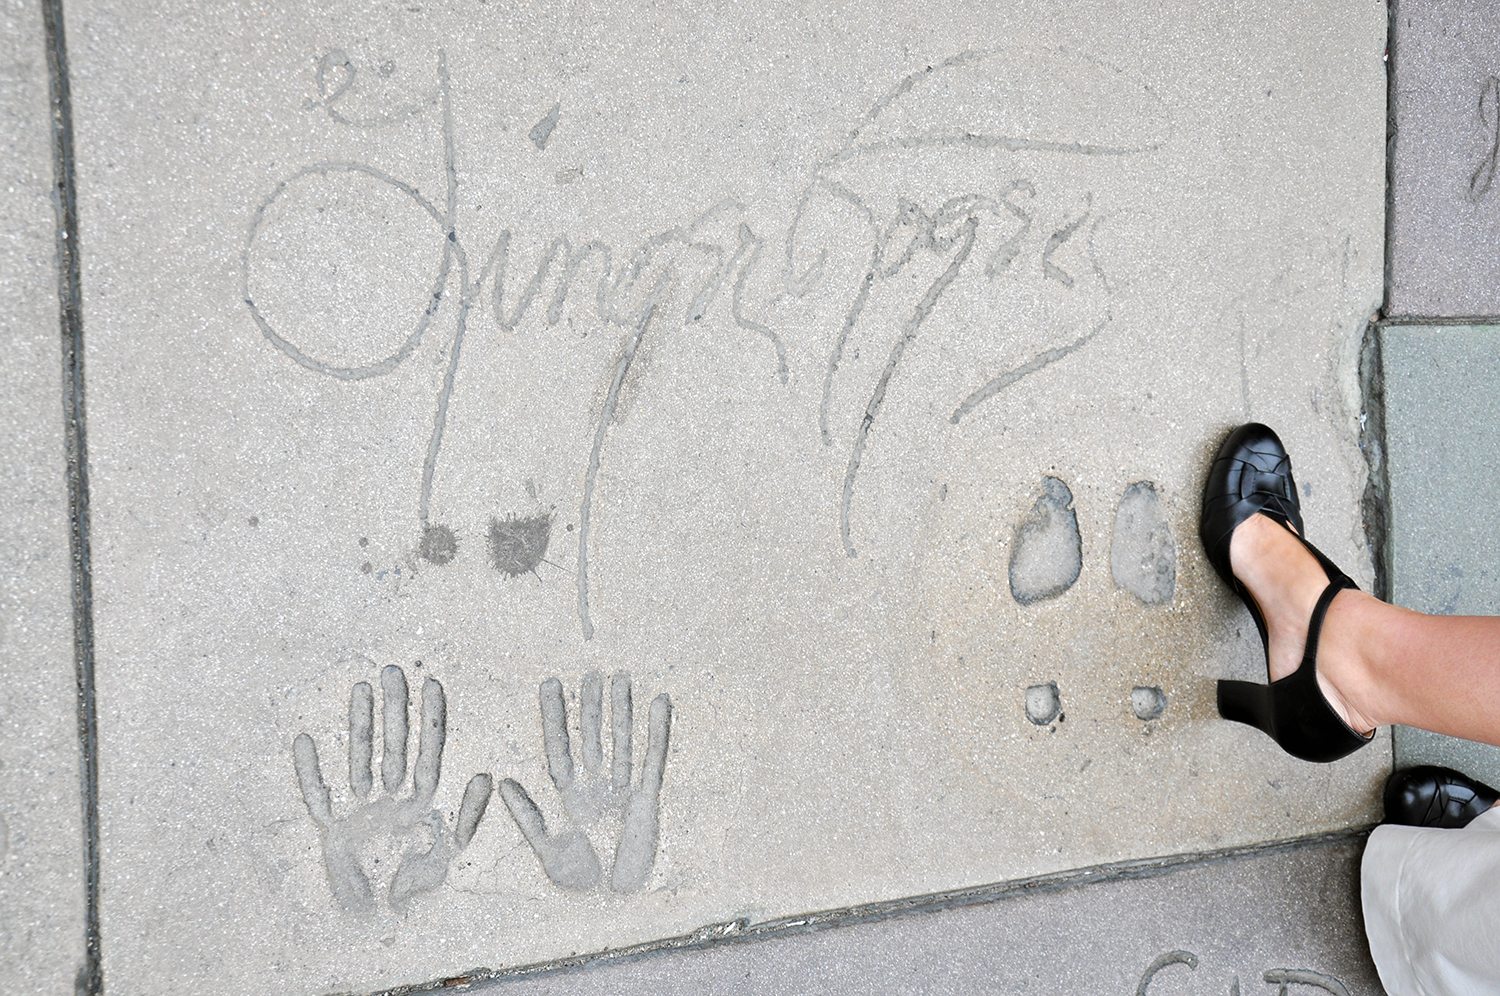 Grauman's footprints Ginger Rogers